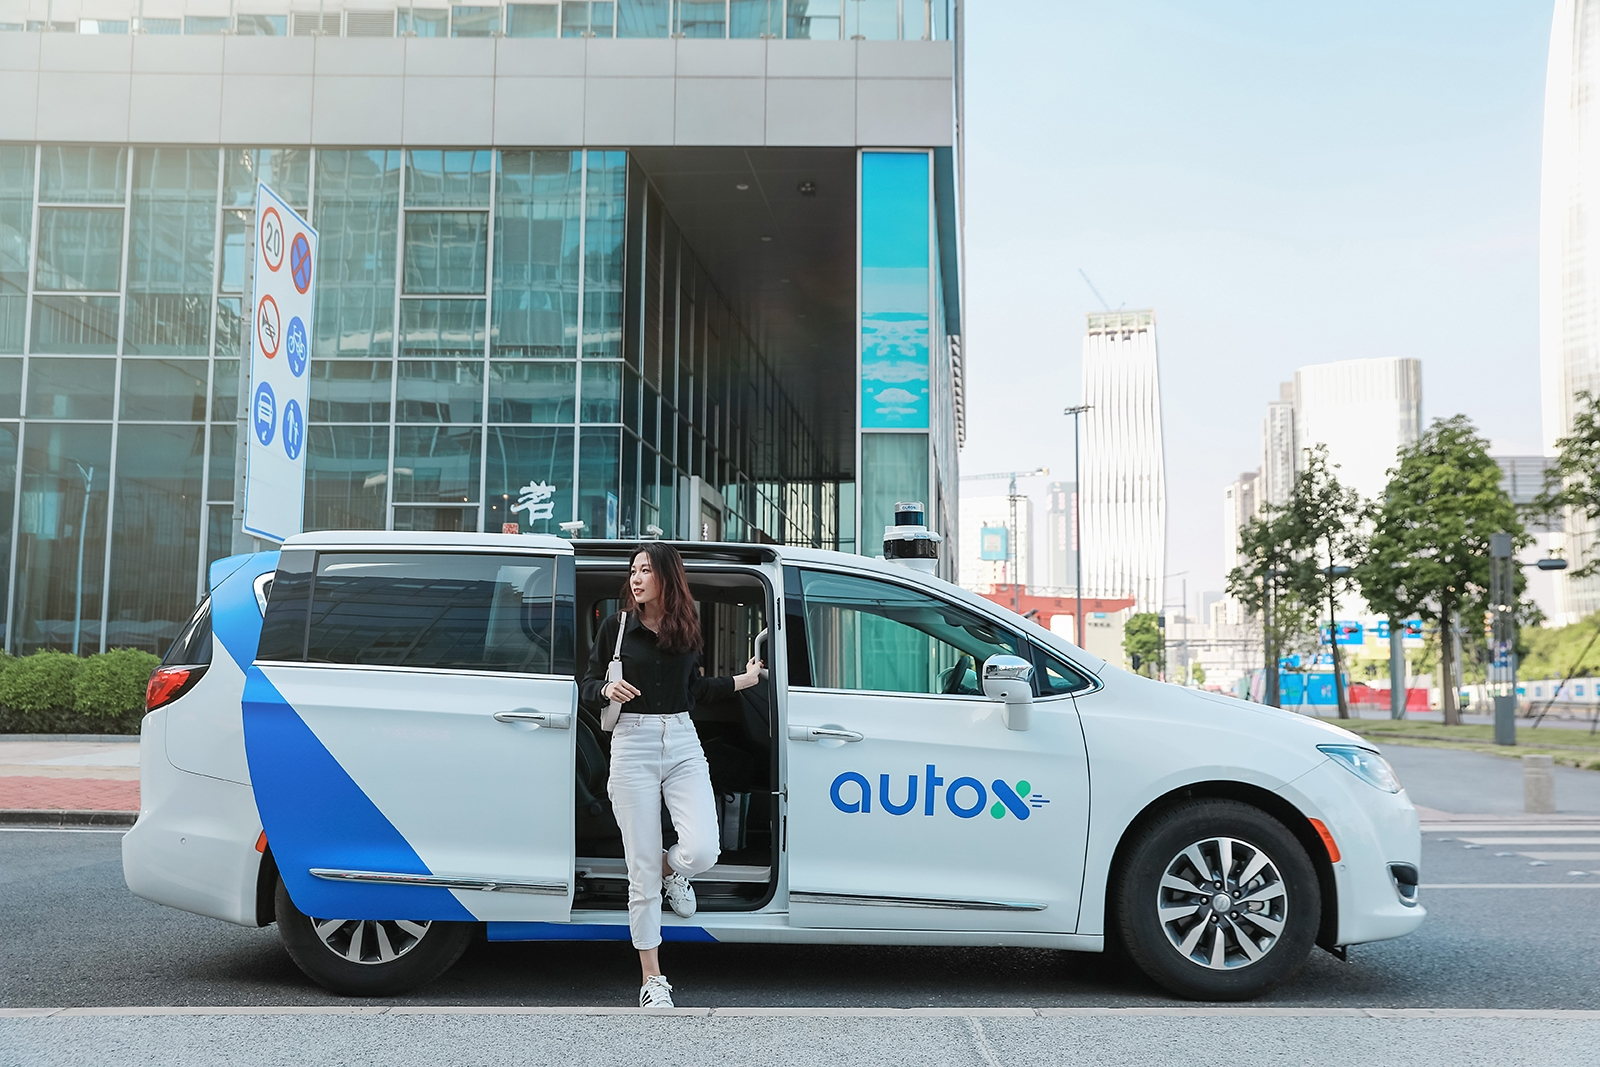 China's first fully driverless robotaxis hit the streets of Shenzhen | DeviceDaily.com